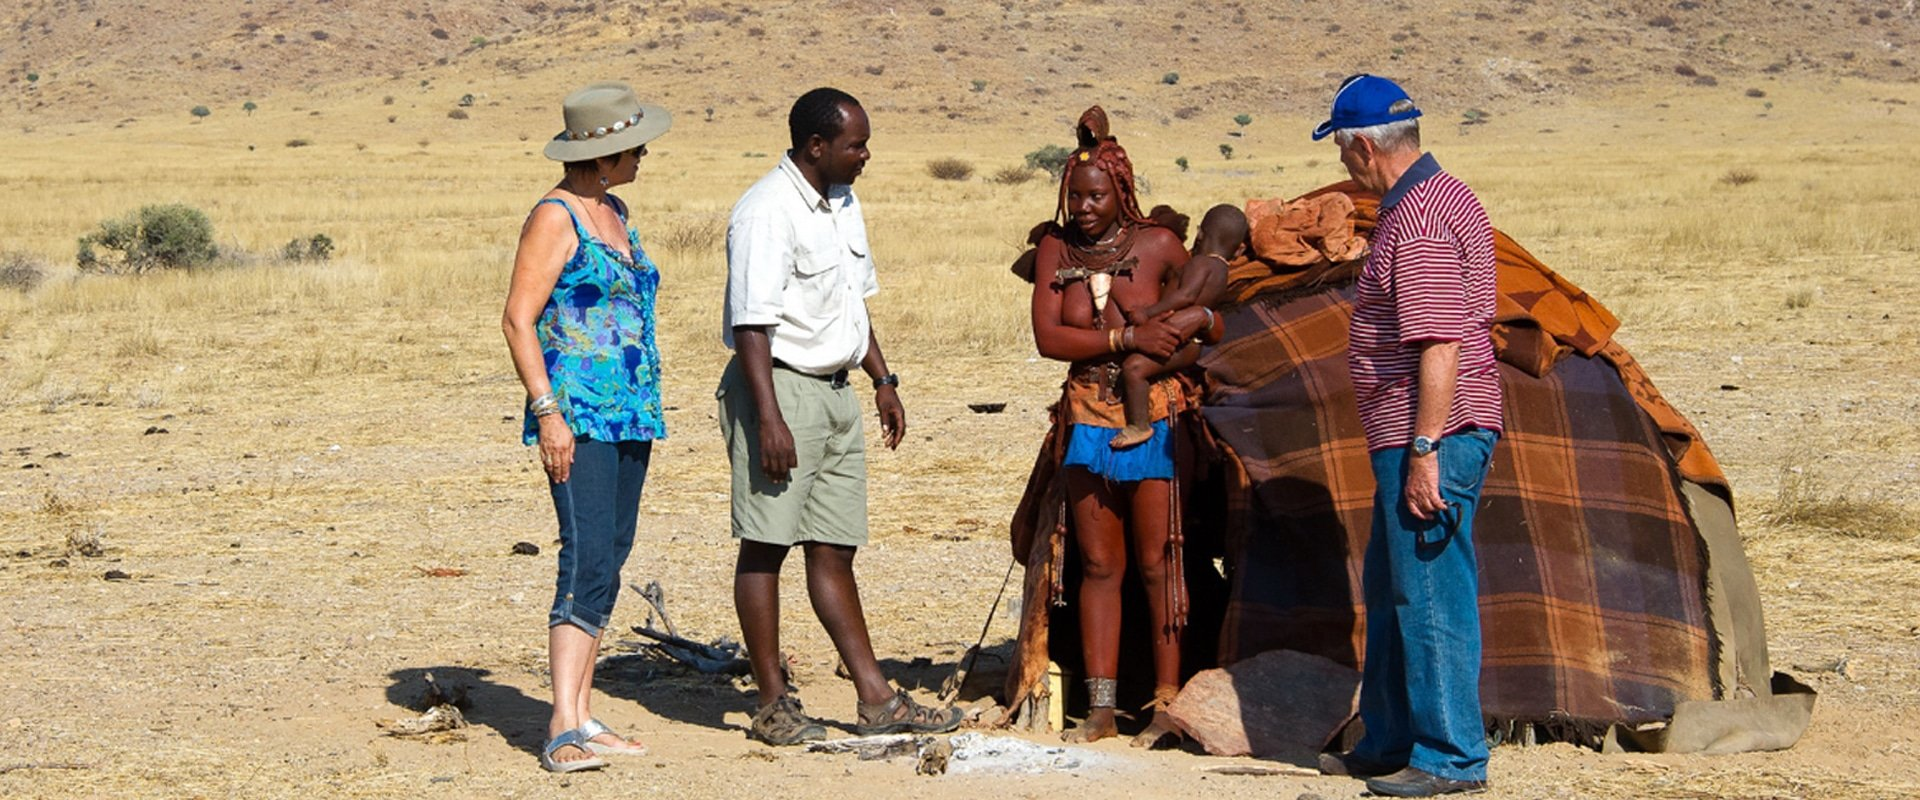 Engage with the Himba people